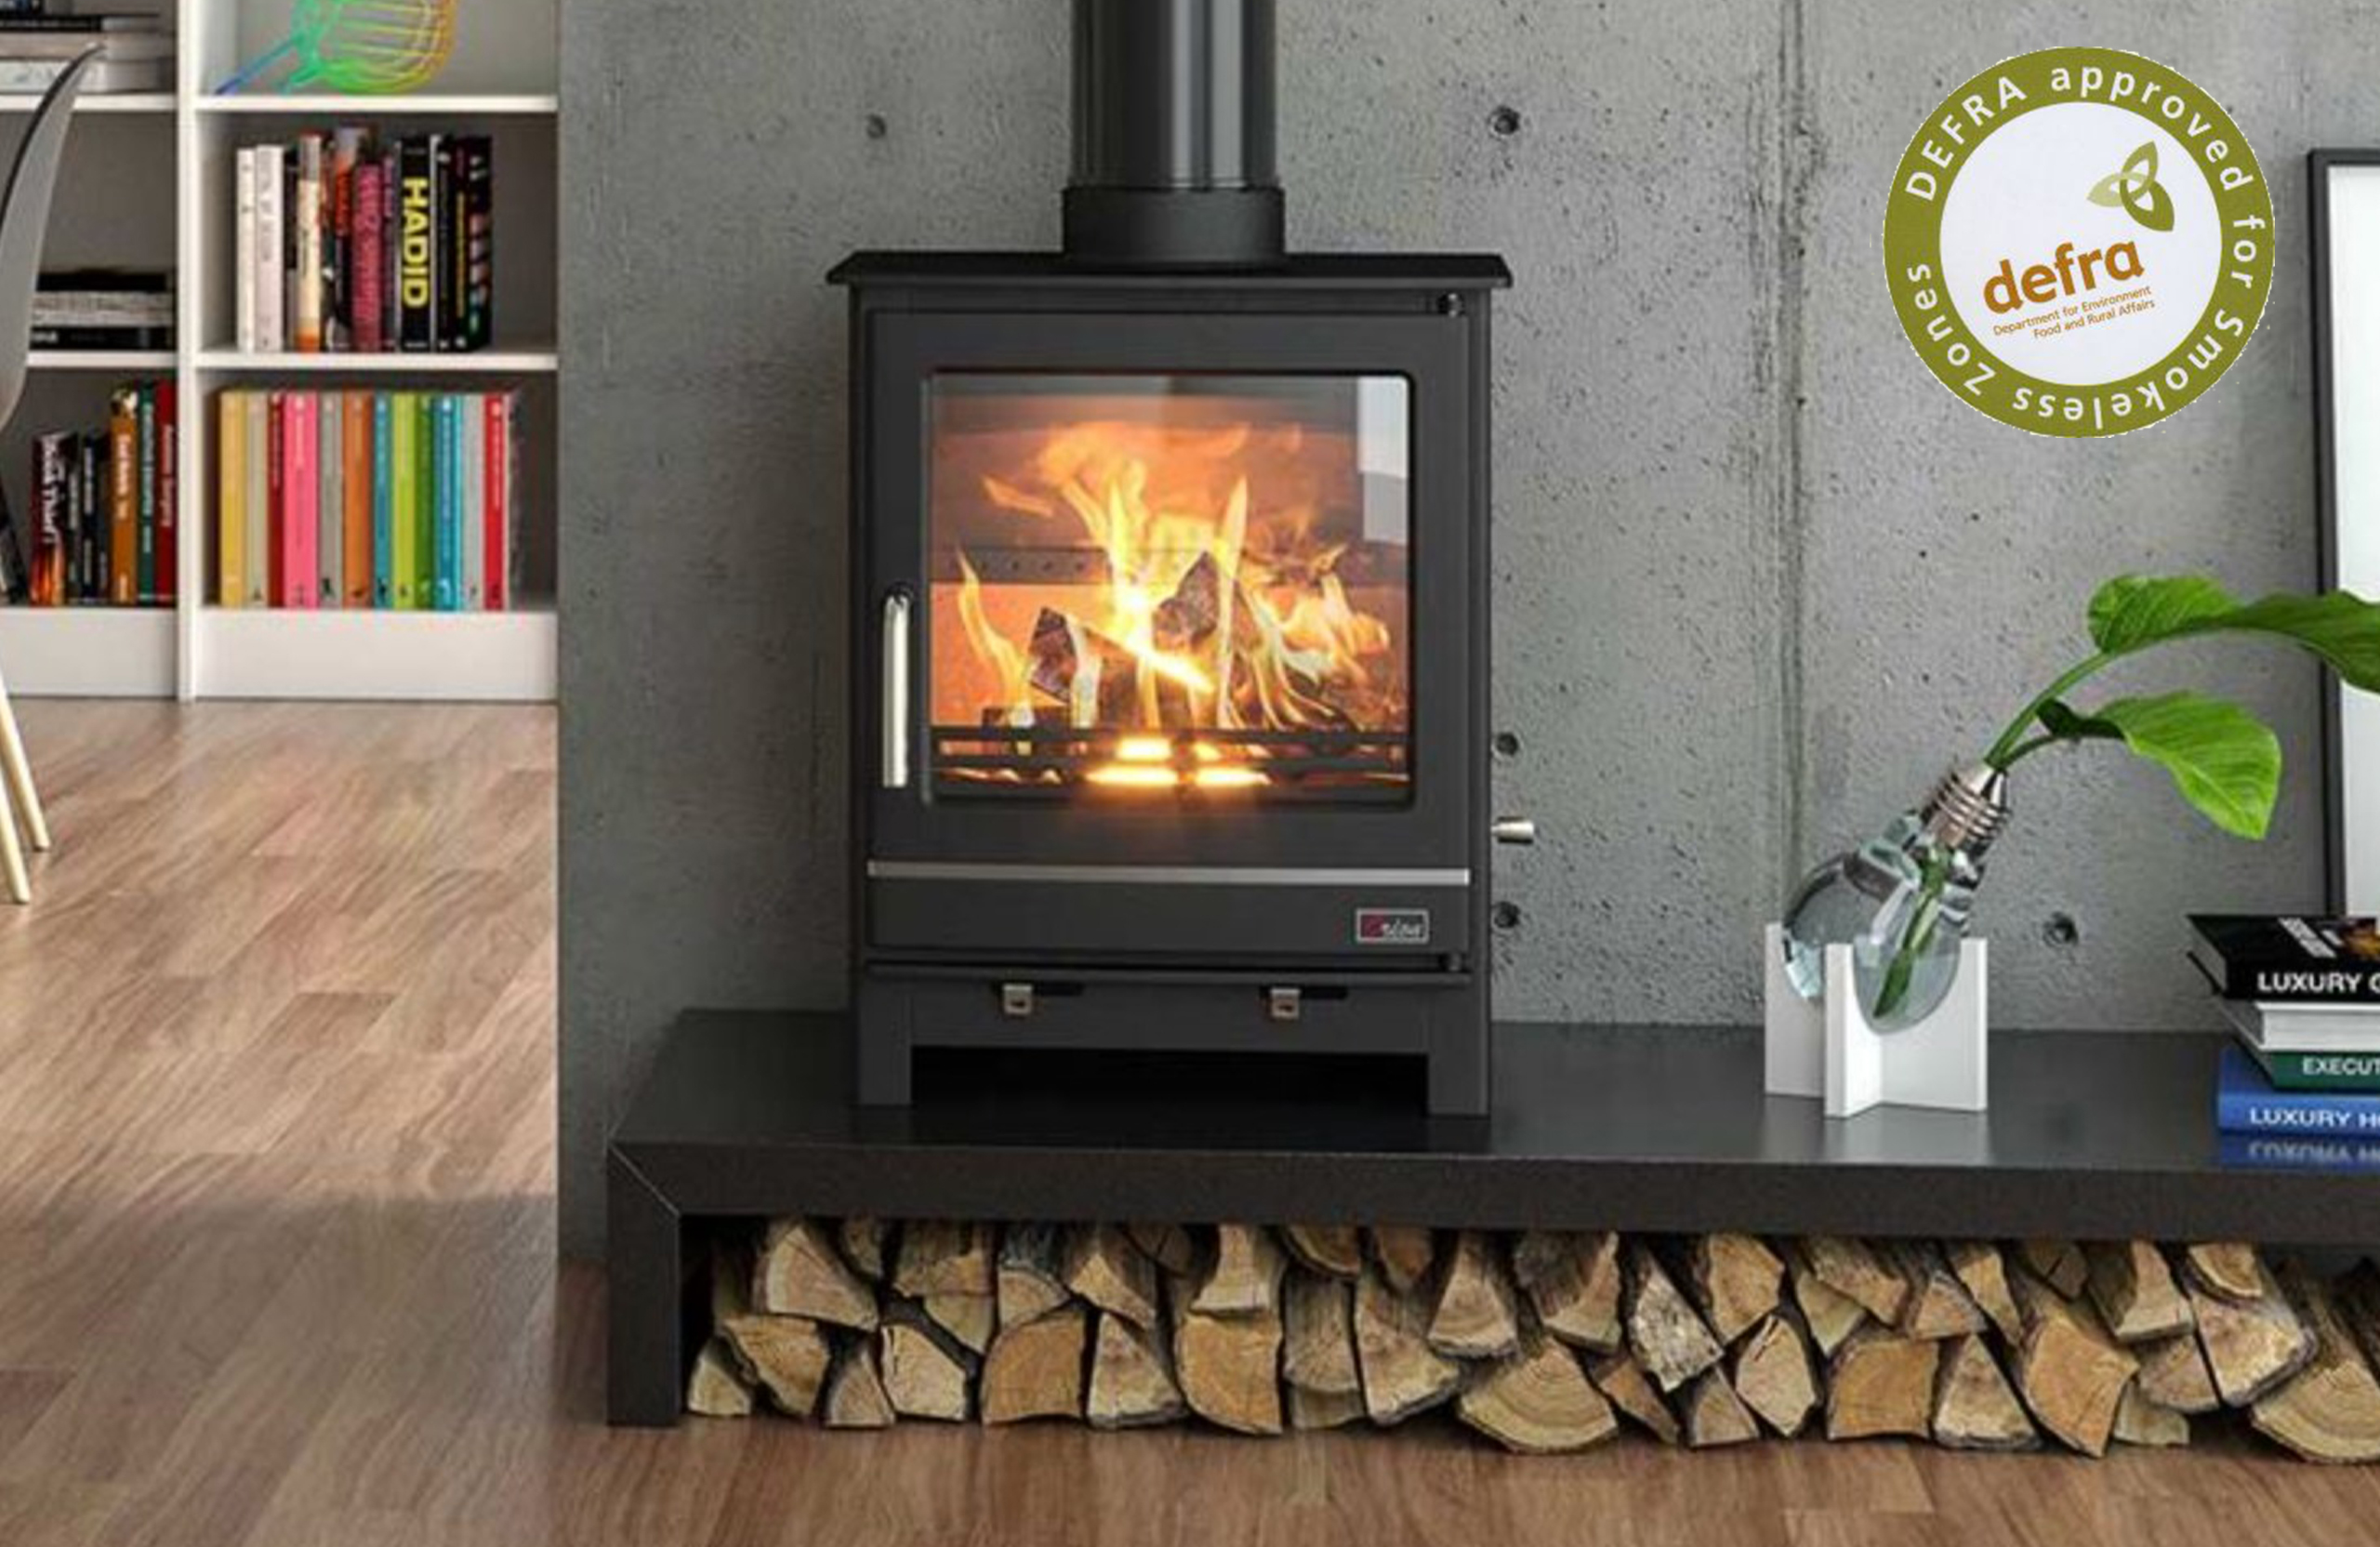 Defra Approved Eco Stoves, Best Eco Stoves for smokeless Zones